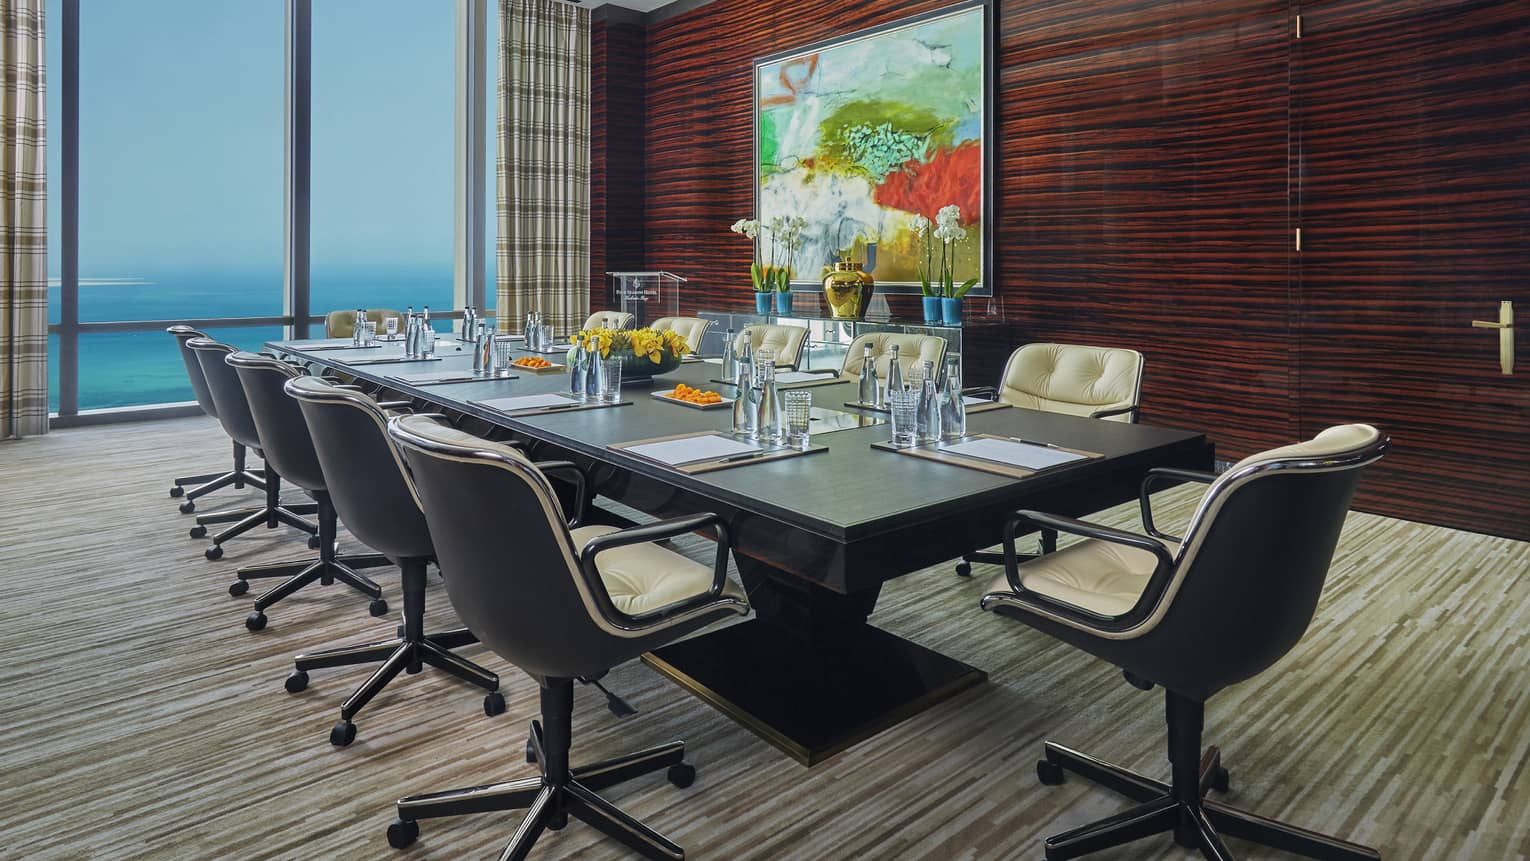 Boardroom meeting table lined with swivel chairs by wood wall with large painting, window